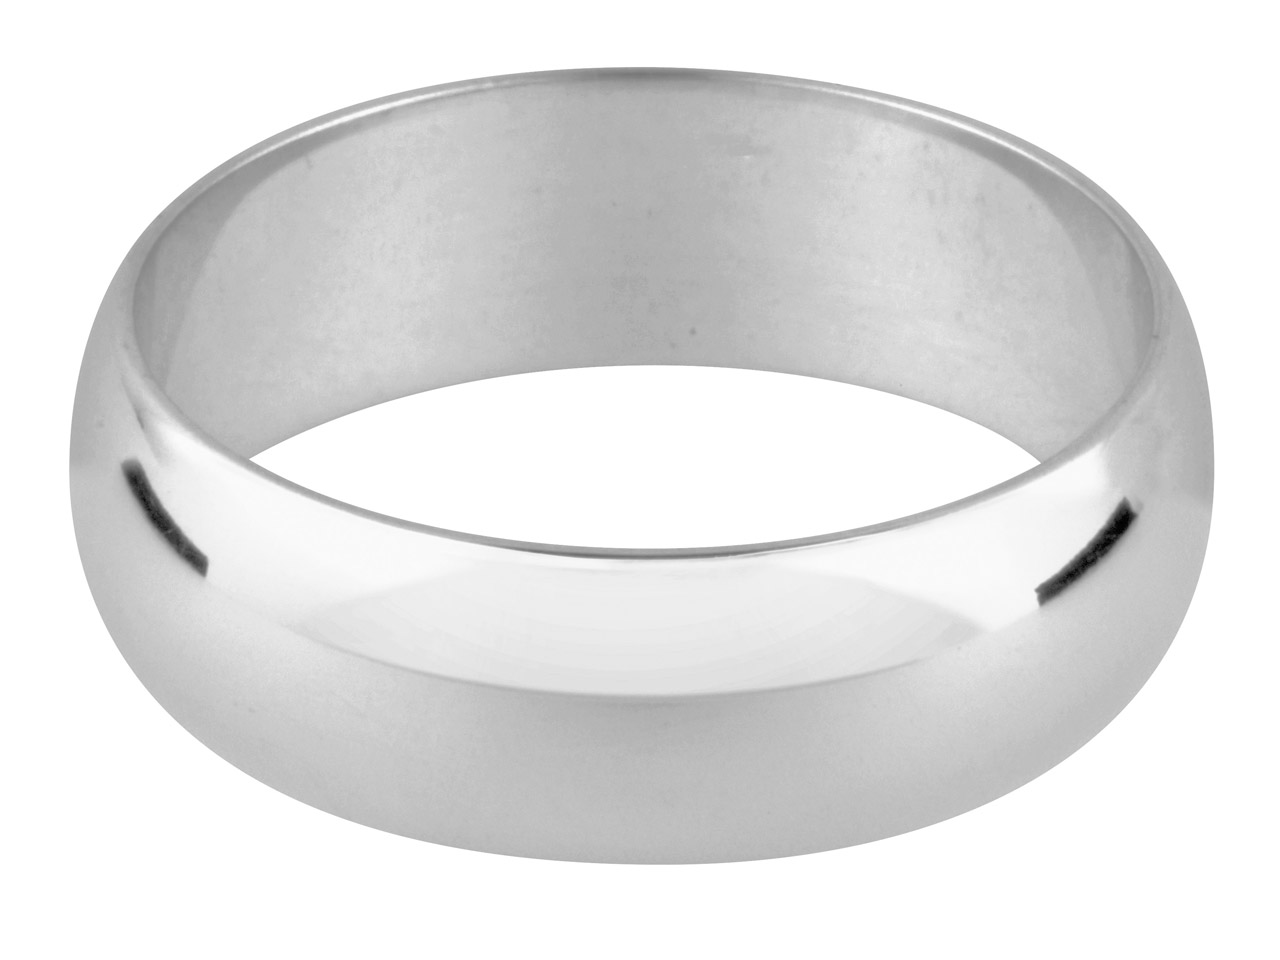 Palladium 500 D Shape Wedding Ring 4.0mm Y 4.1gms Medium Weight       Hallmarked Wall Thickness 1.35mm